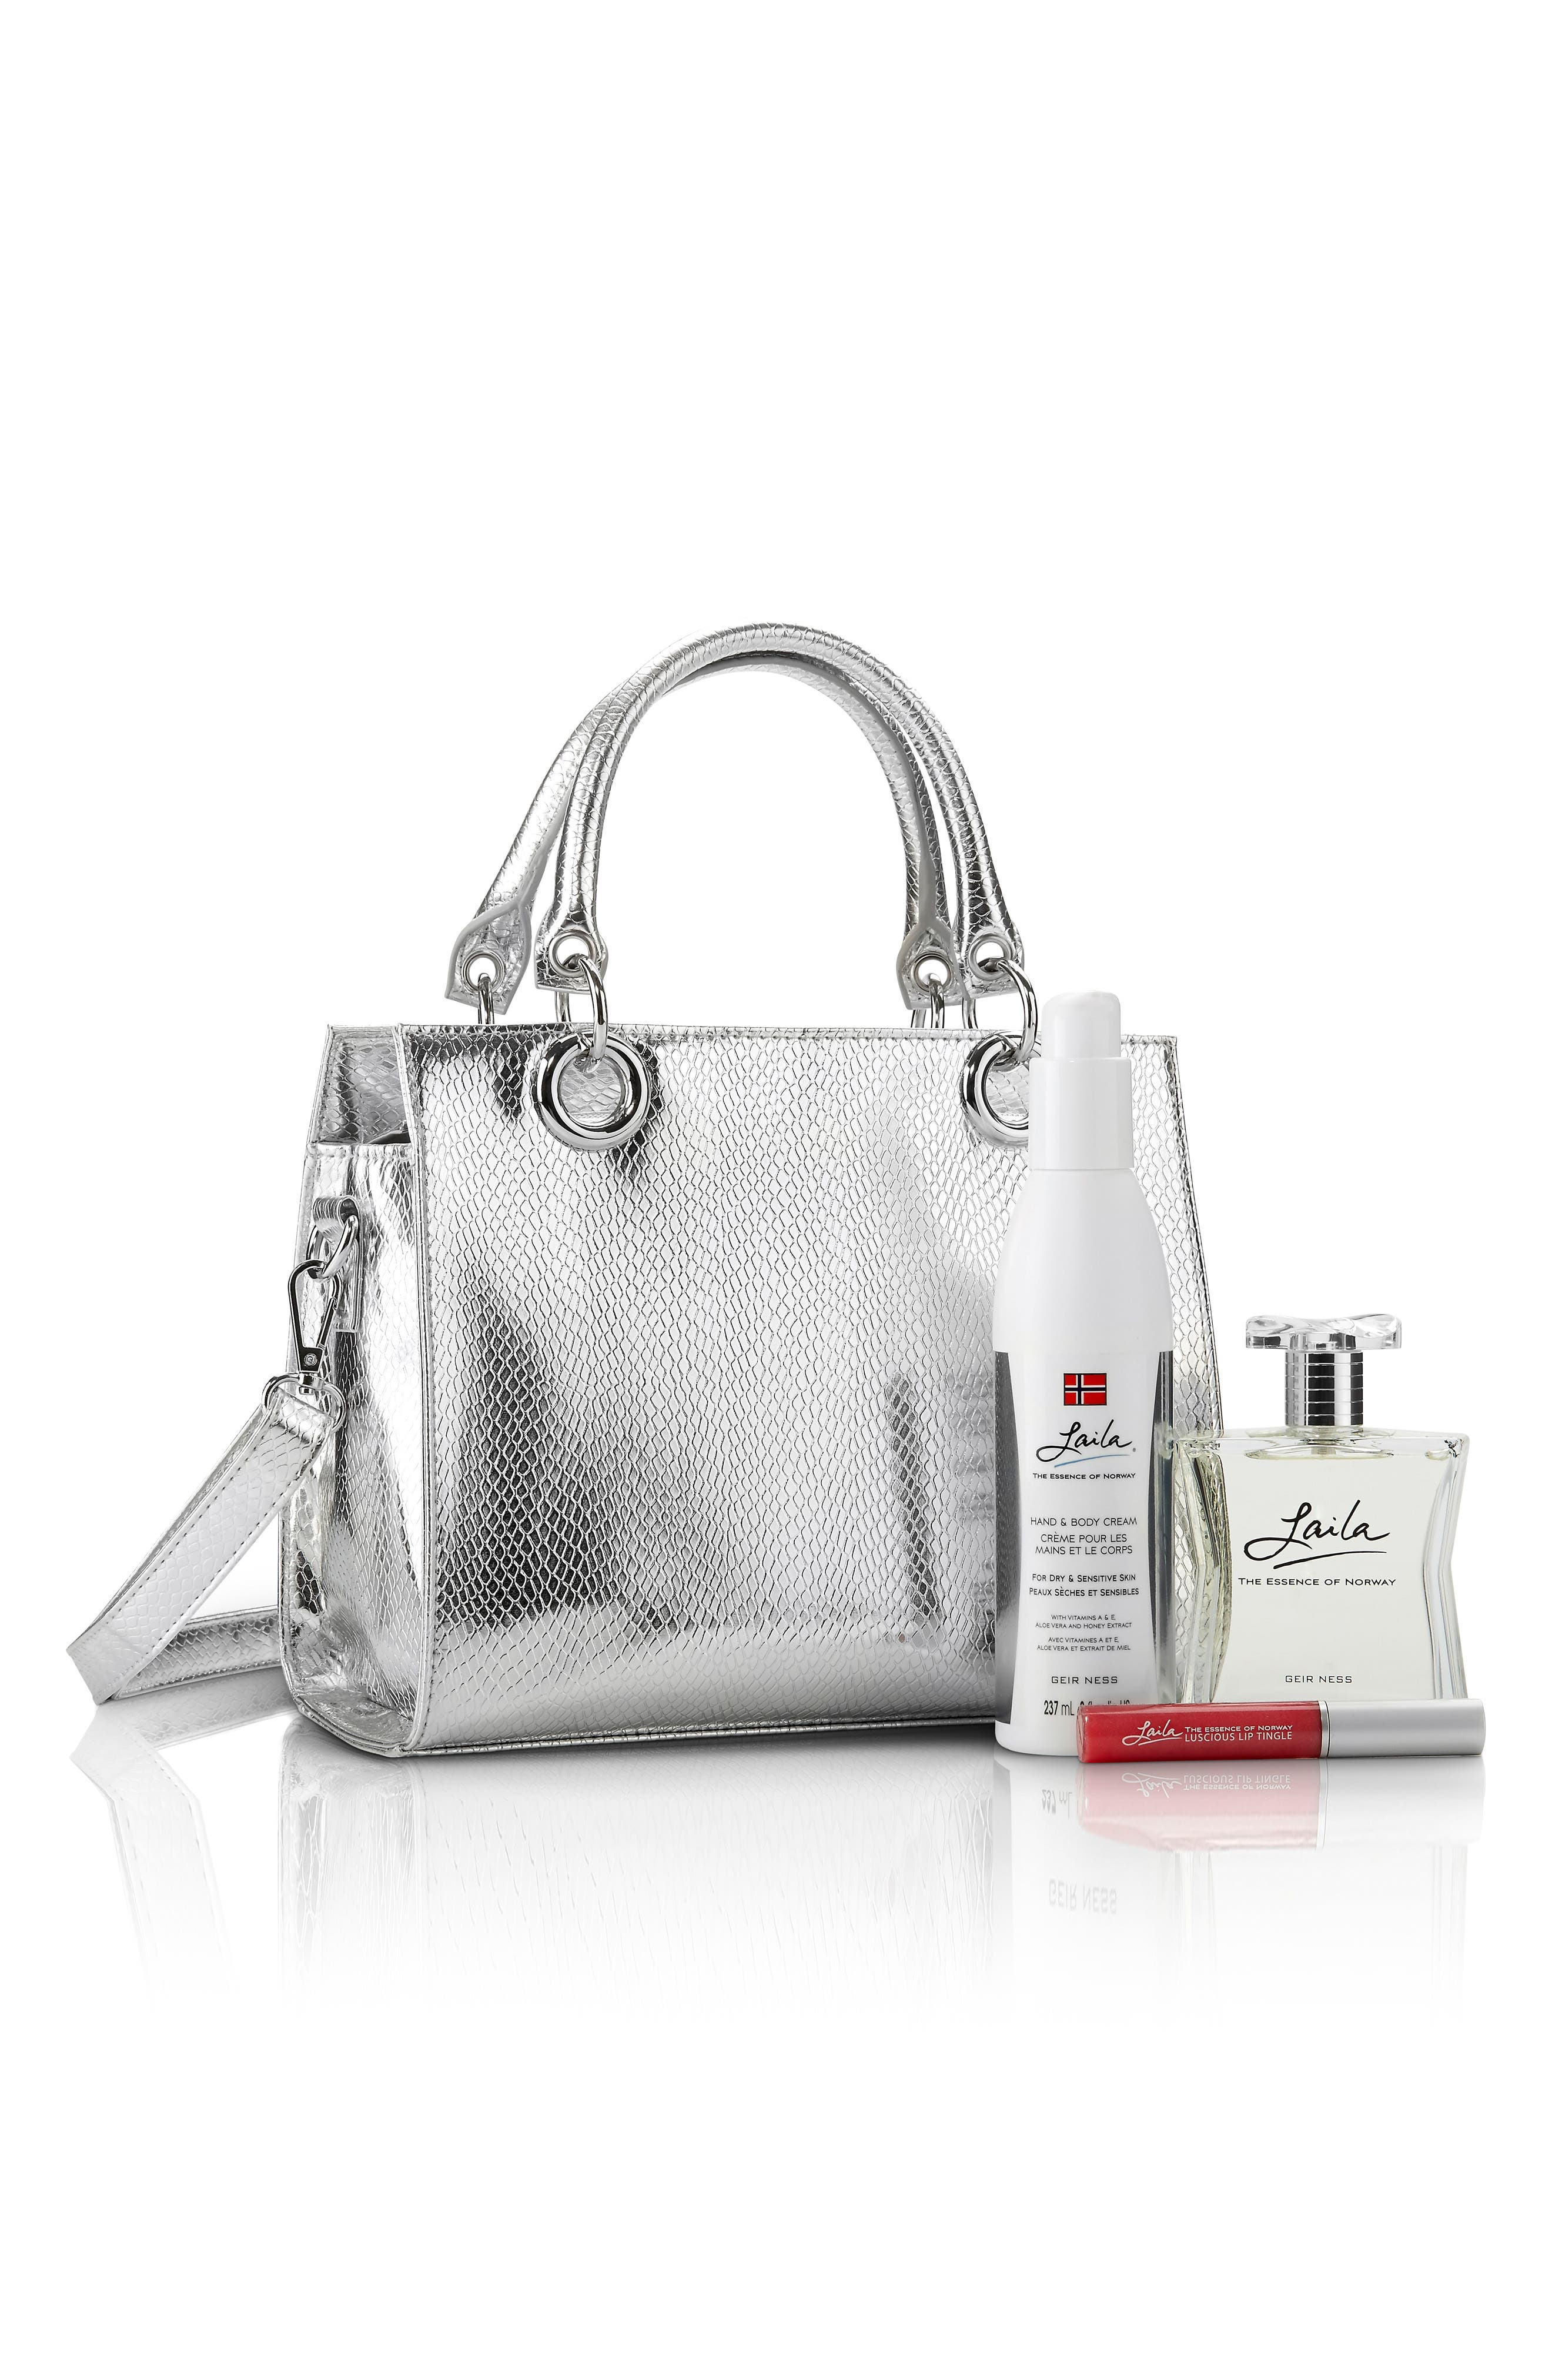 Alternate Image 1 Selected - Laila Eau de Parfum & Embossed Purse Set